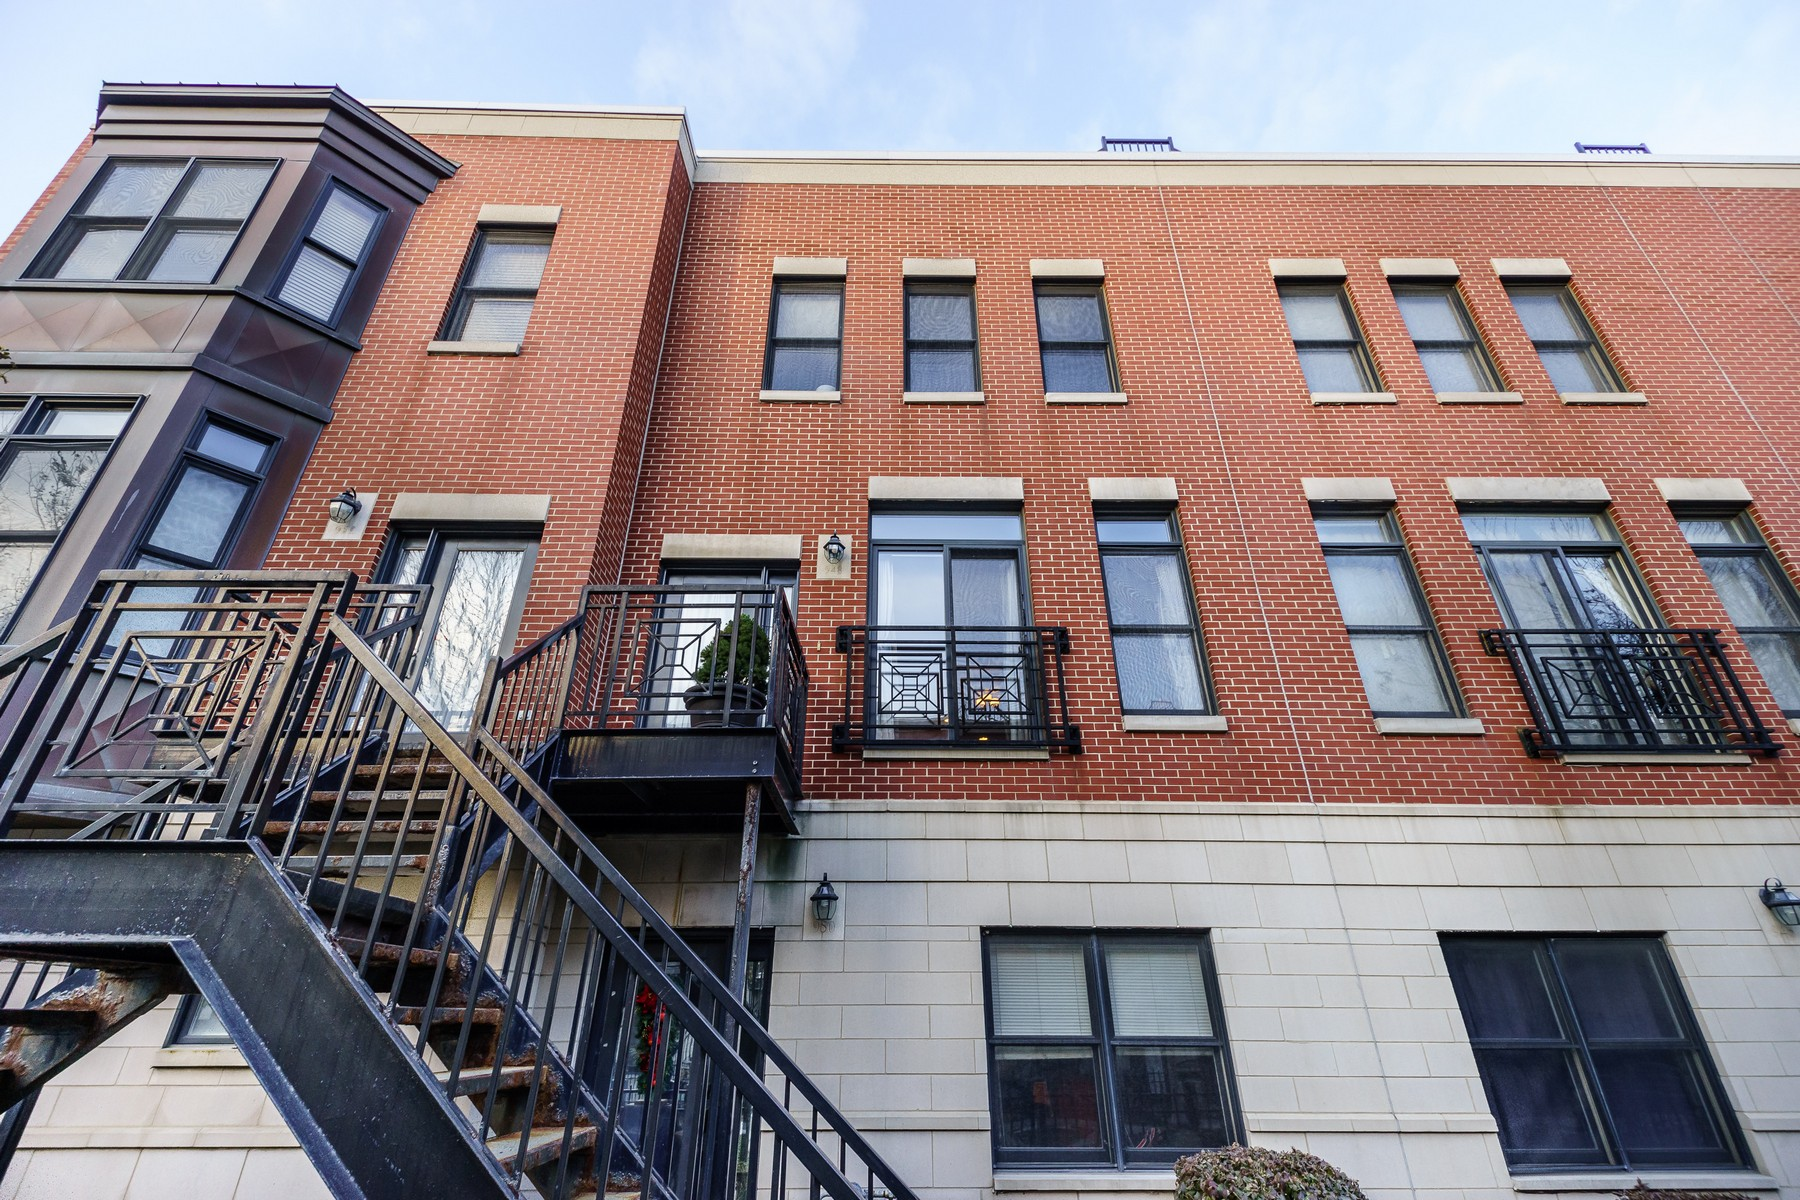 Таунхаус для того Продажа на Beautifully Maintained University Village Townhome 948 W College Parkway Near West Side, Chicago, Иллинойс, 60608 Соединенные Штаты